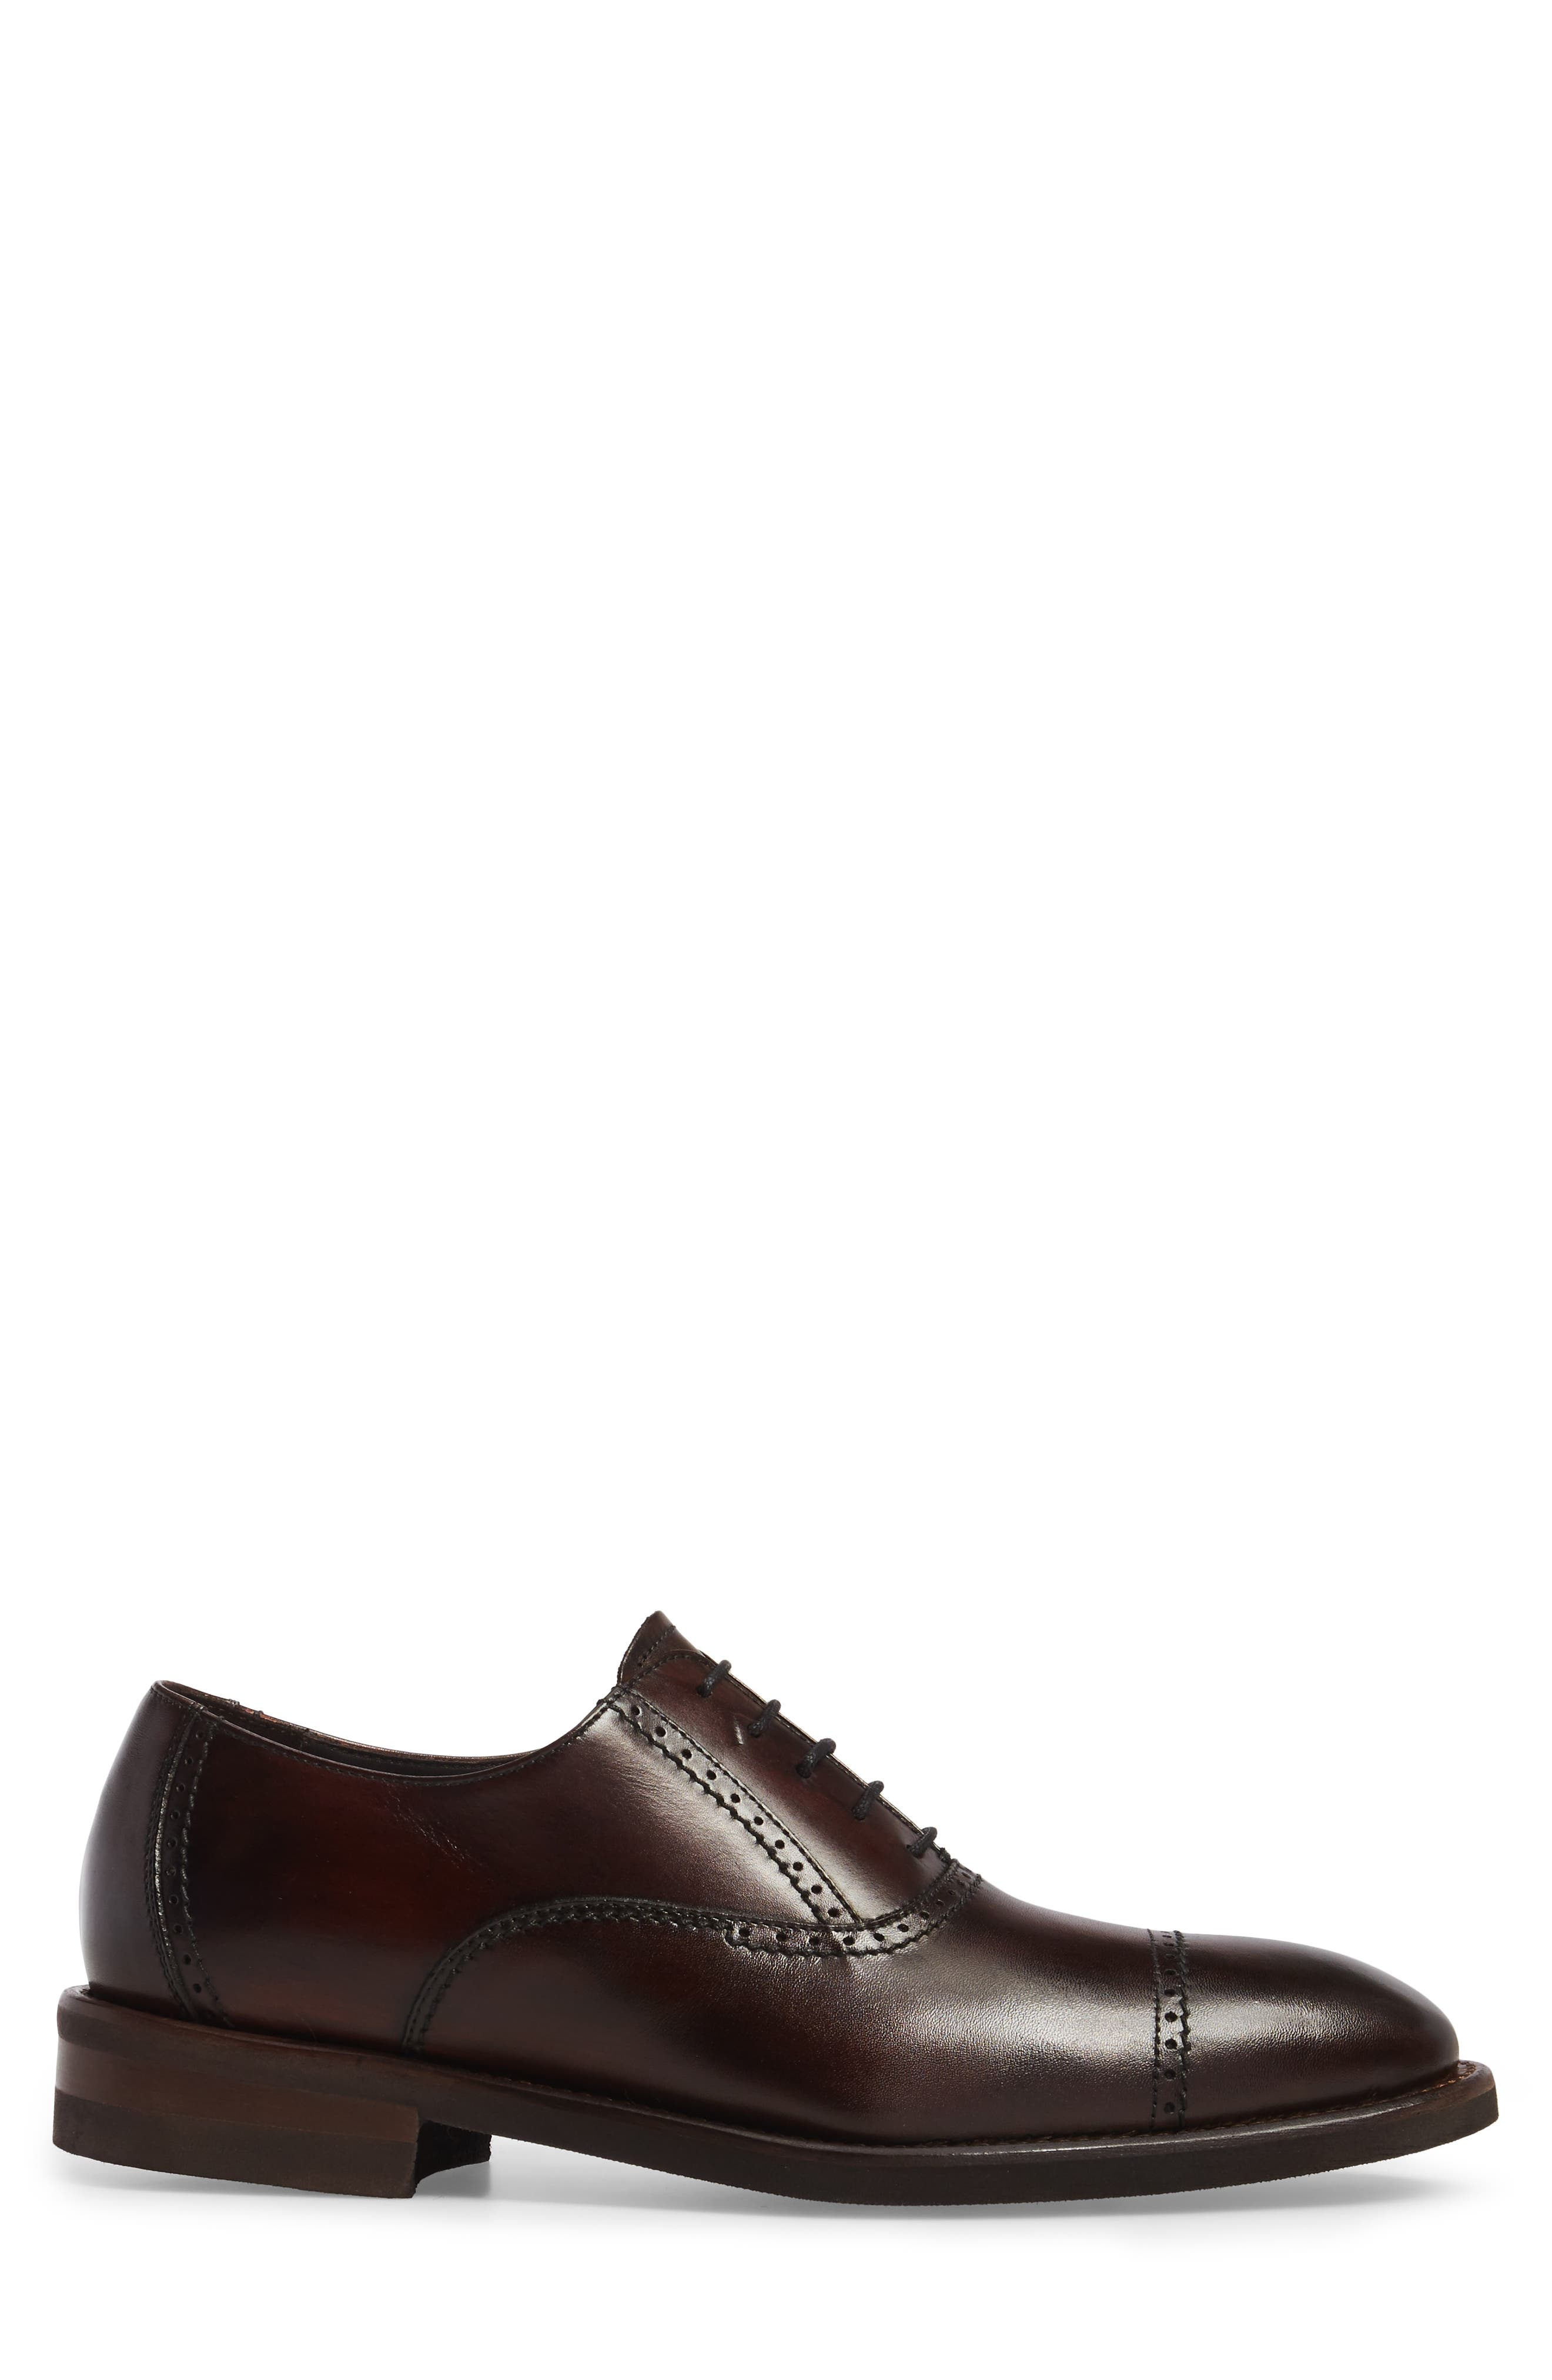 Alternate Image 3  - Monte Rosso Borgo Cap Toe Oxford (Men)